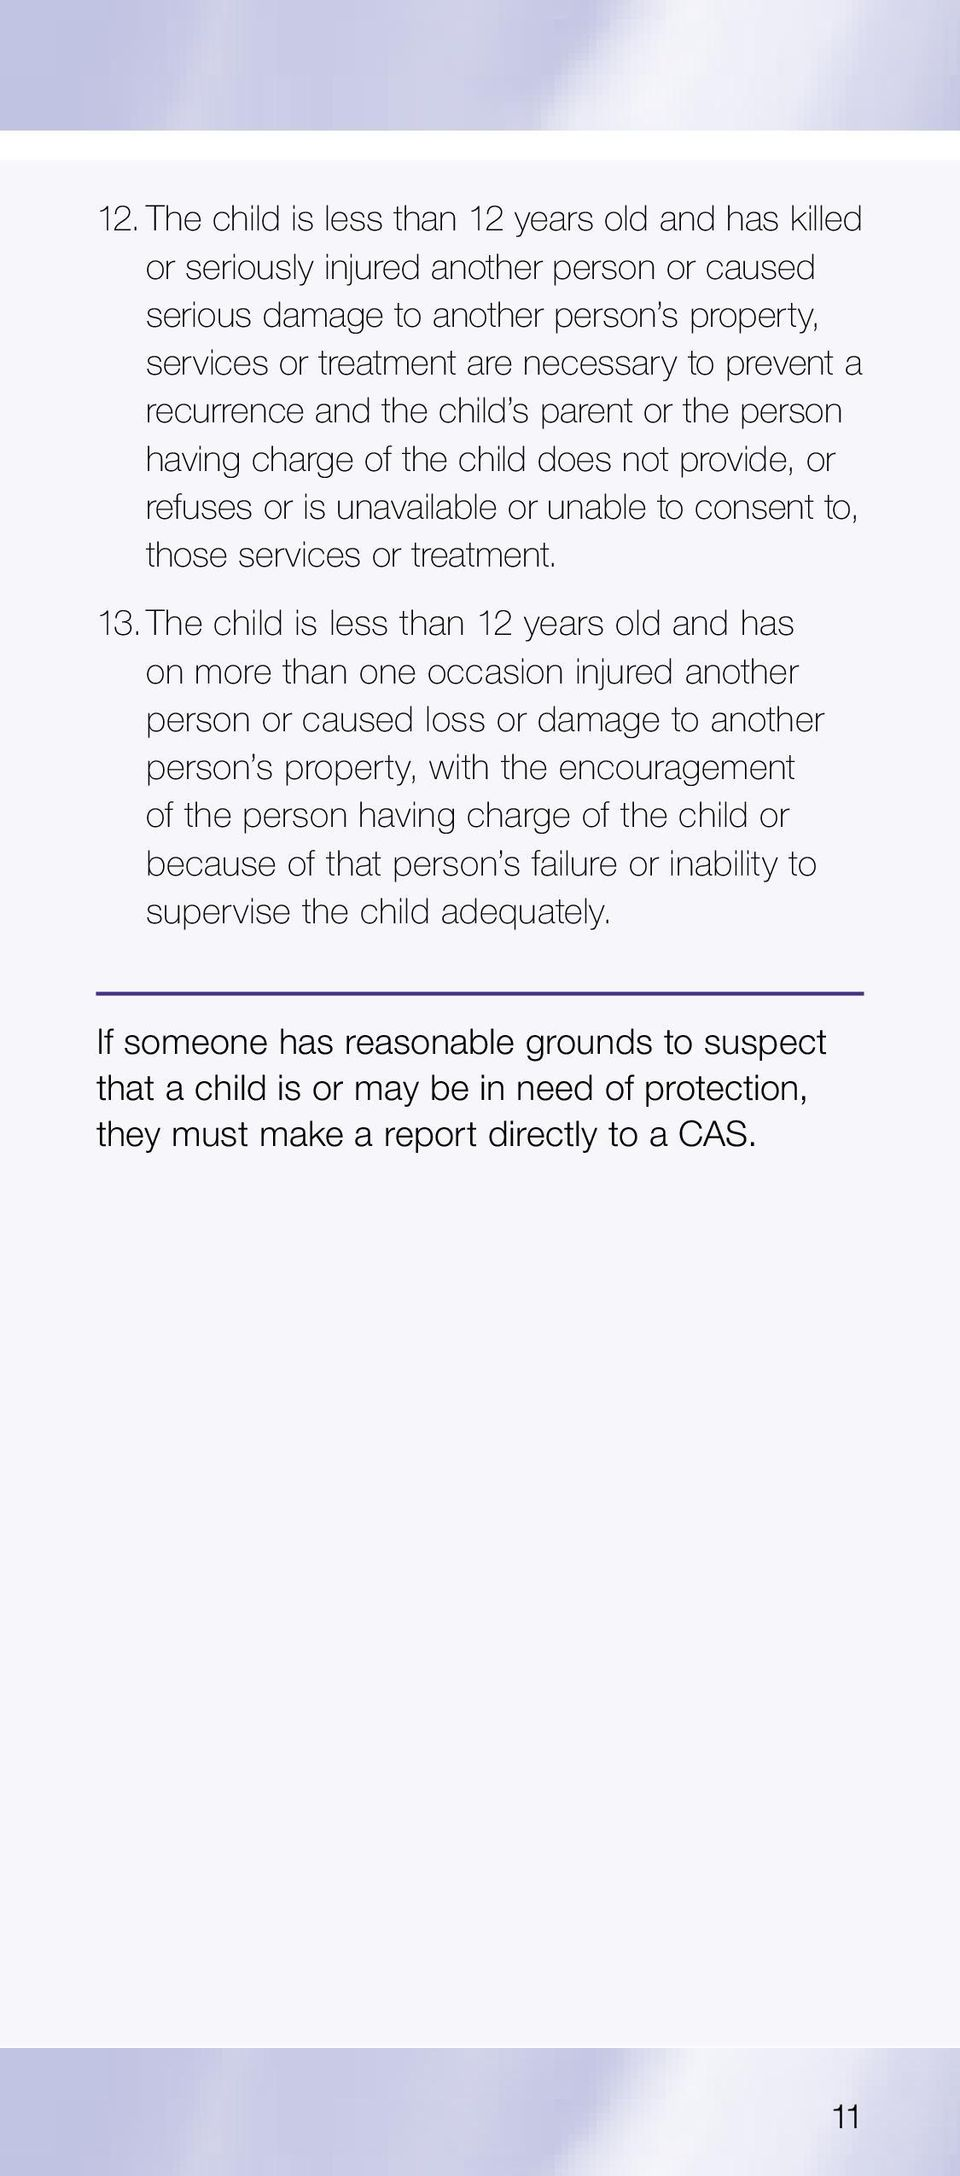 The child is less than 12 years old and has on more than one occasion injured another person or caused loss or damage to another person s property, with the encouragement of the person having charge